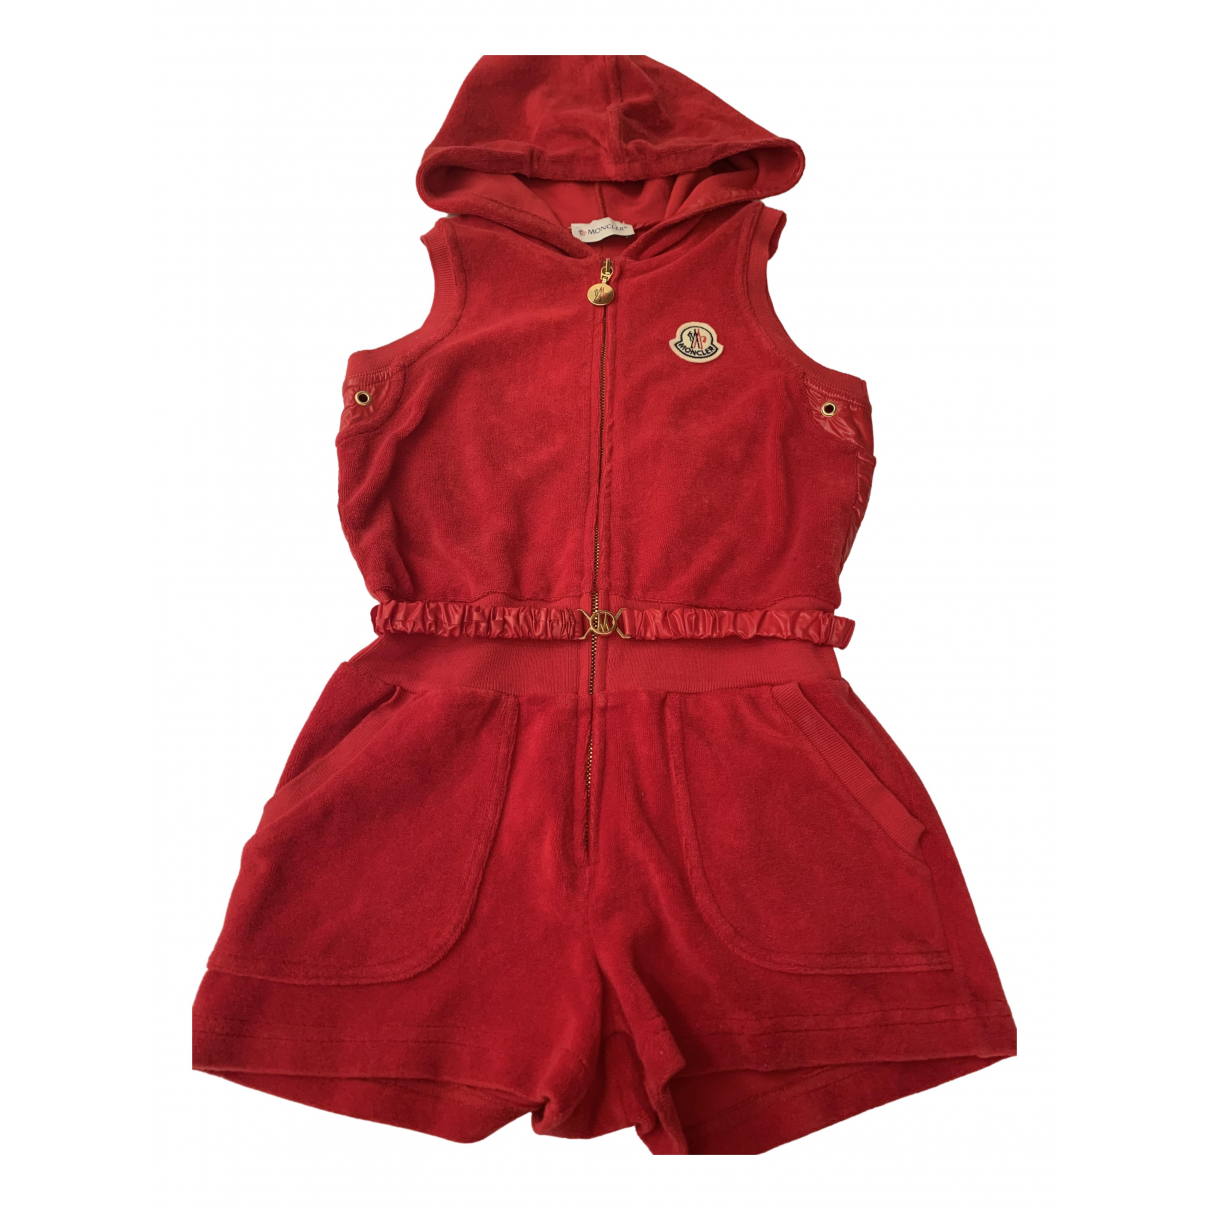 Moncler \N Red Cotton dress for Kids 5 years - up to 108cm FR